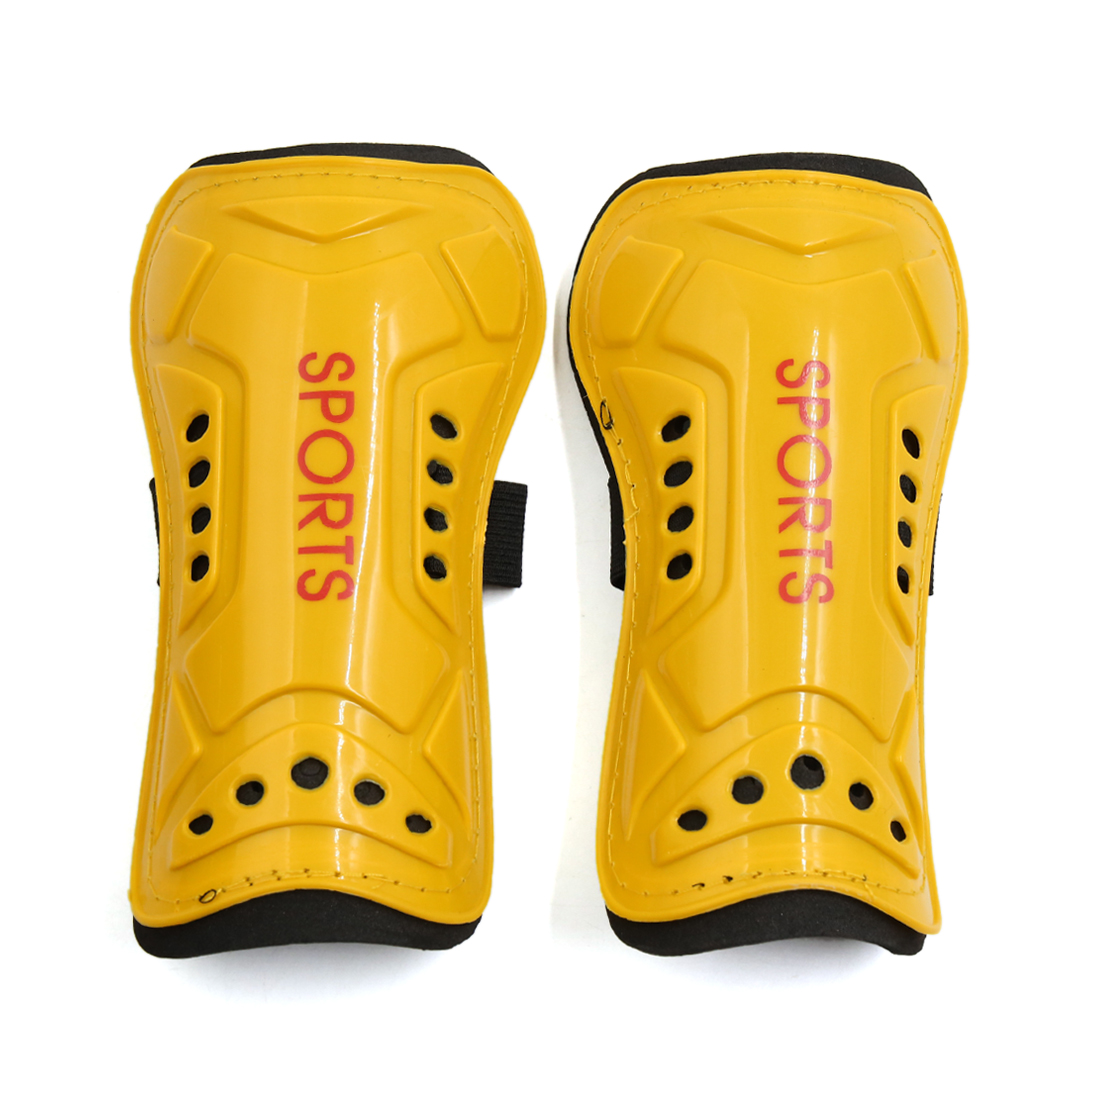 1 Pair Yellow Plastic Foam Football Outdoor Sports Shin Pad Protective Gear Legs Guards